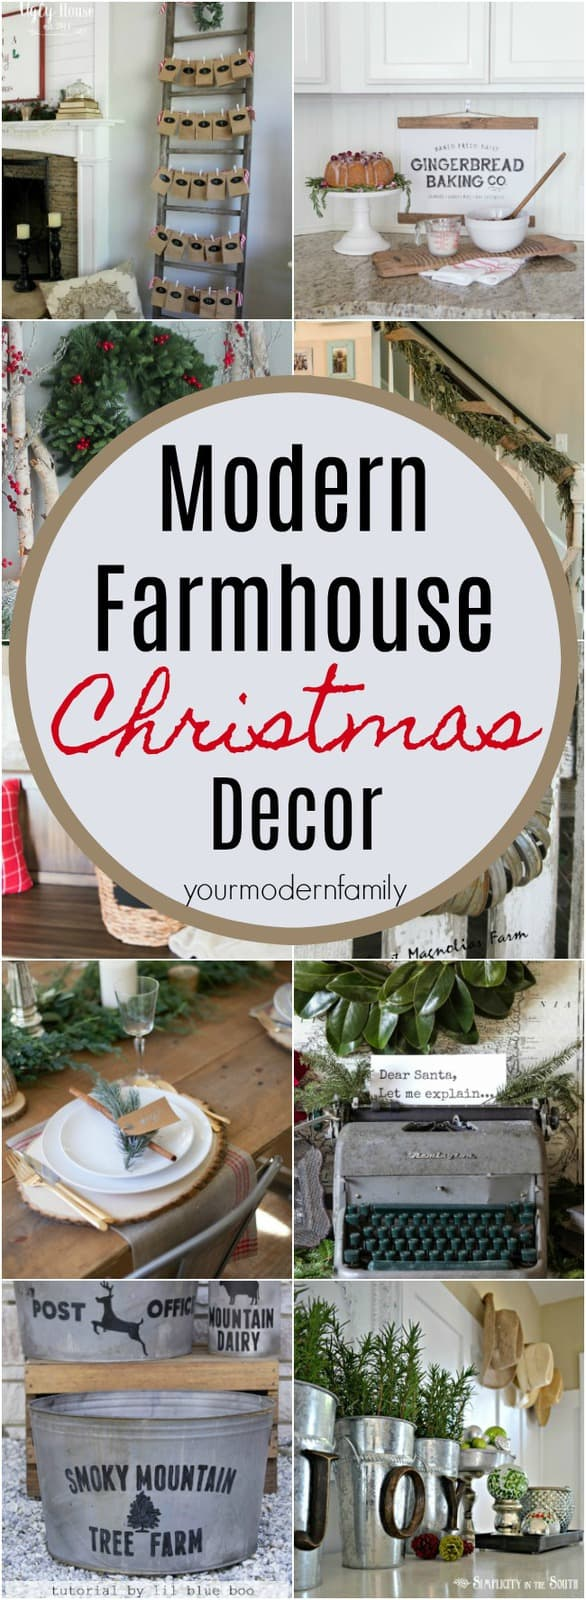 the best modern farmhouse christmas decor ideas - Farmhouse Christmas Tree Decorations